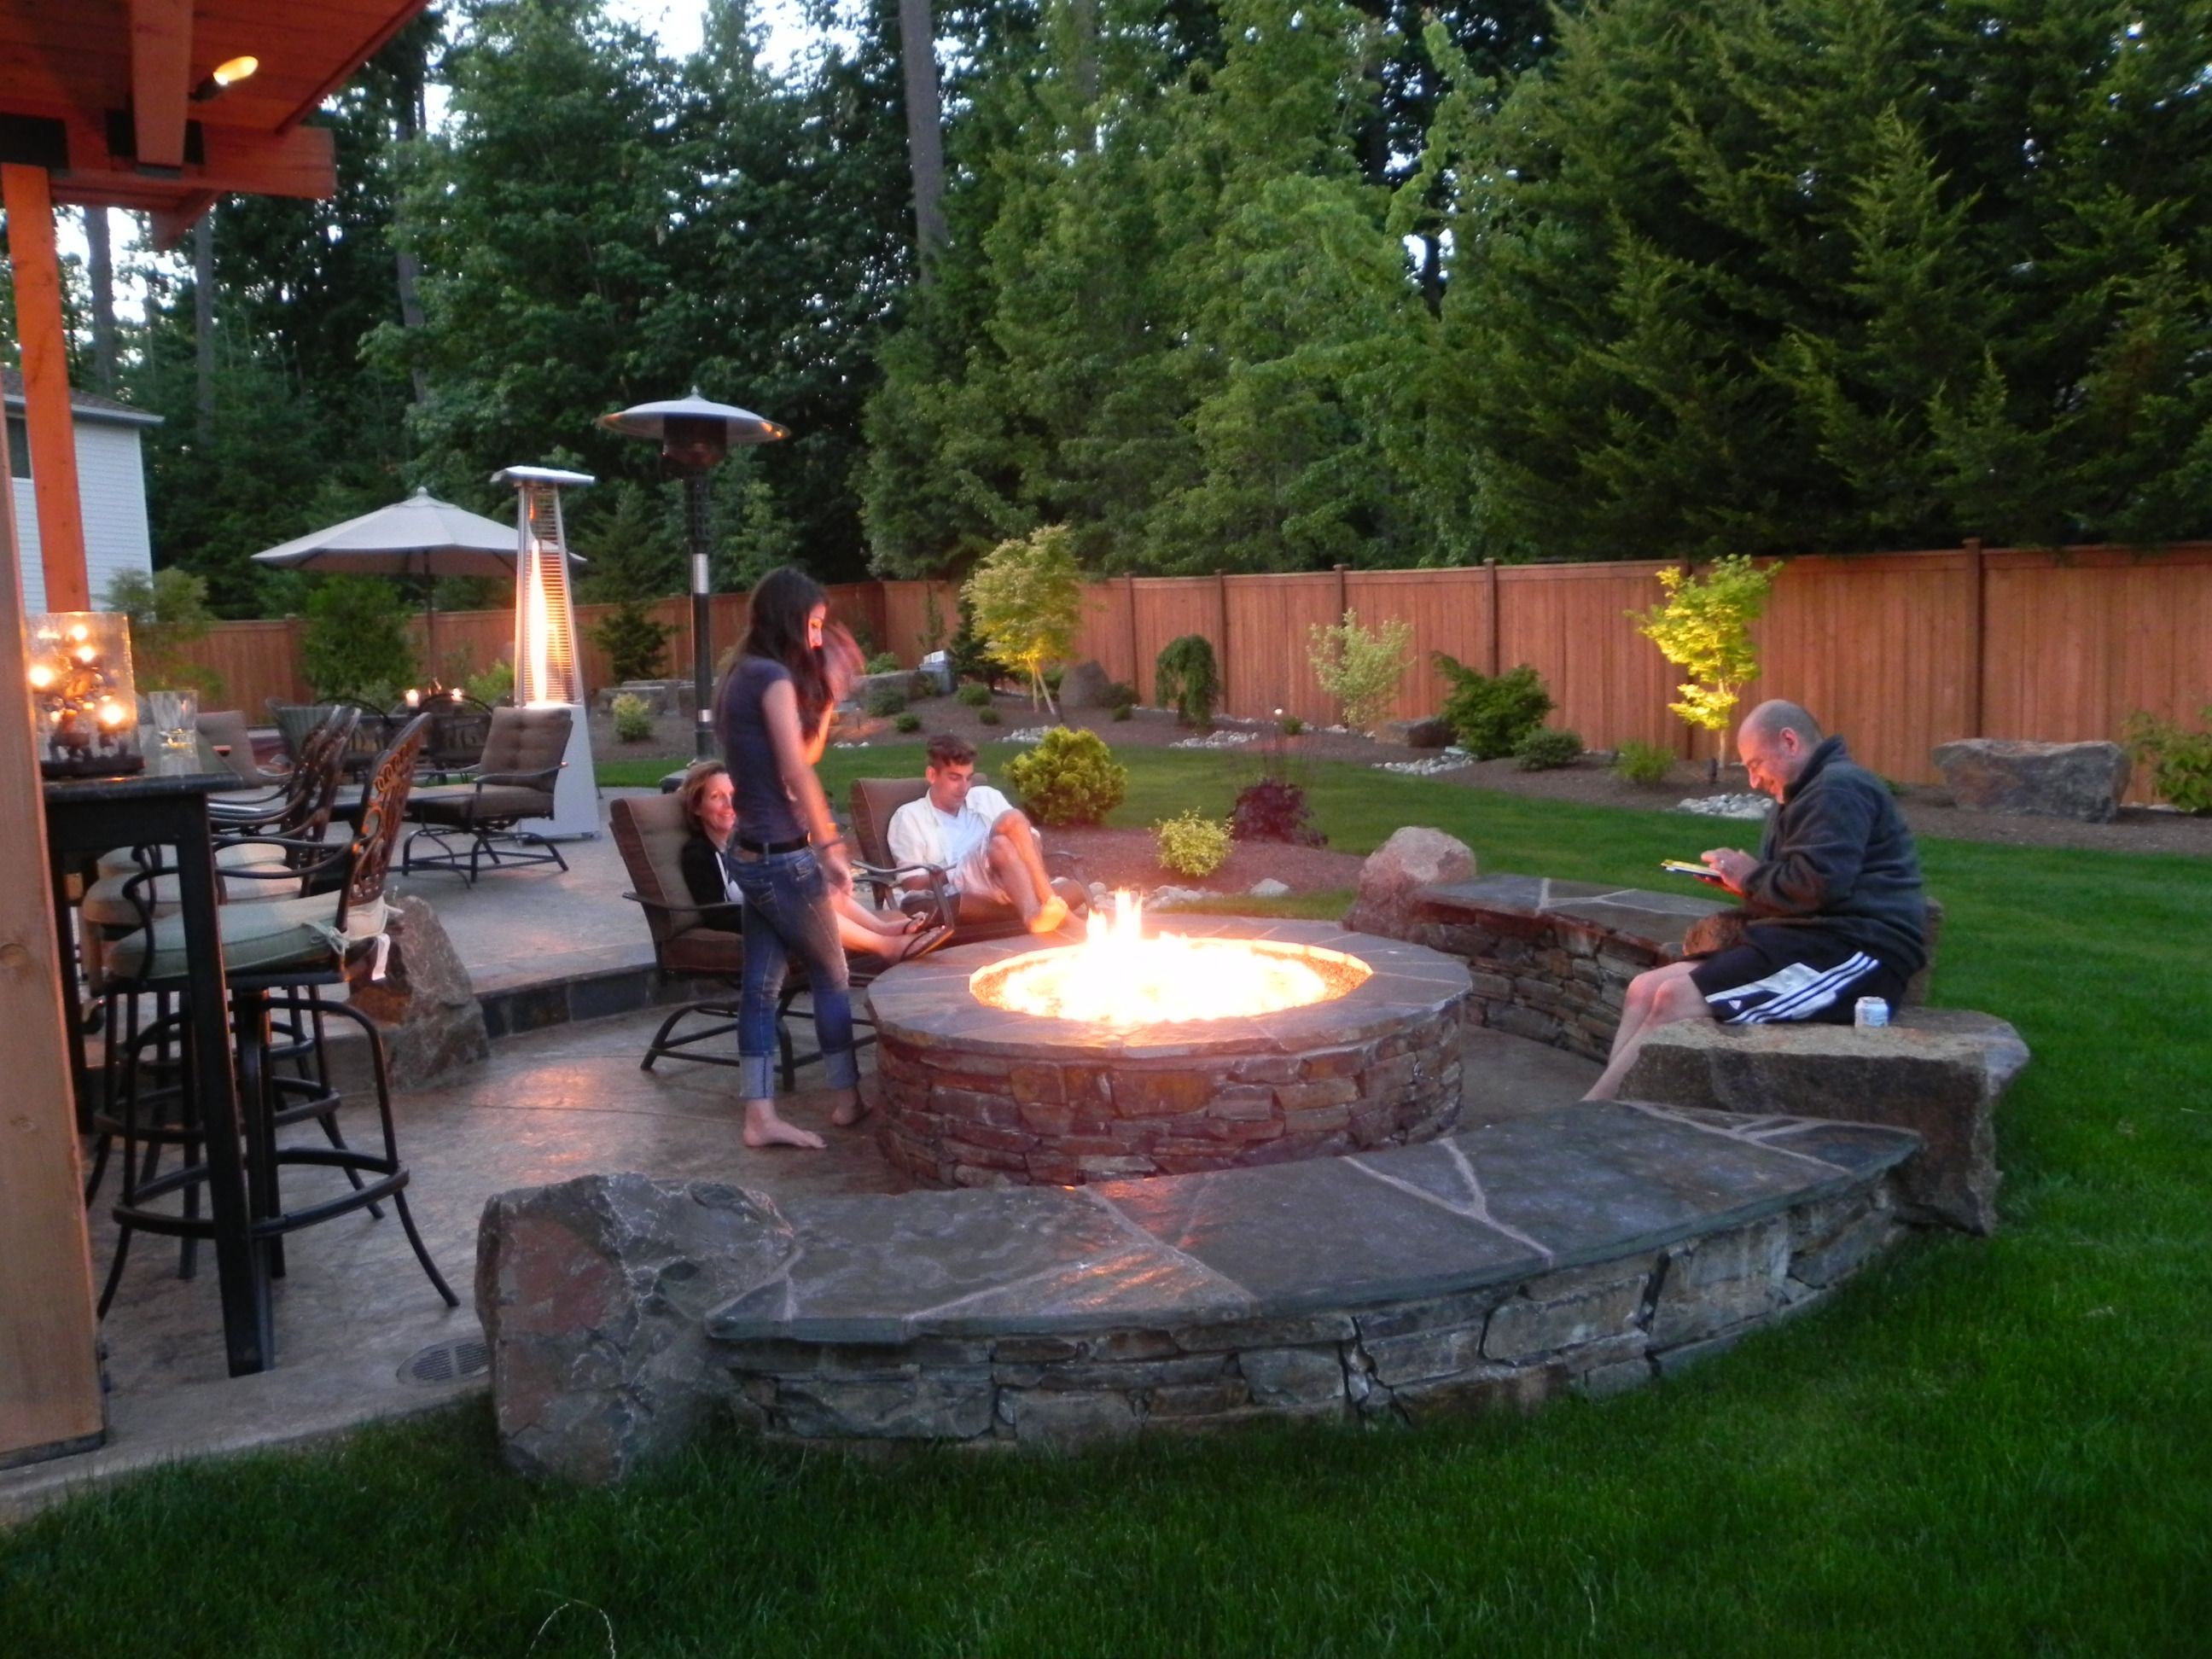 Fire Pit Backyard Ideas fire pit table top dos and donts tips to keep in mind when Back Yard 5 Outstanding Backyard Fire Pit Ideas Landscaping Backyard Landscape Pictures